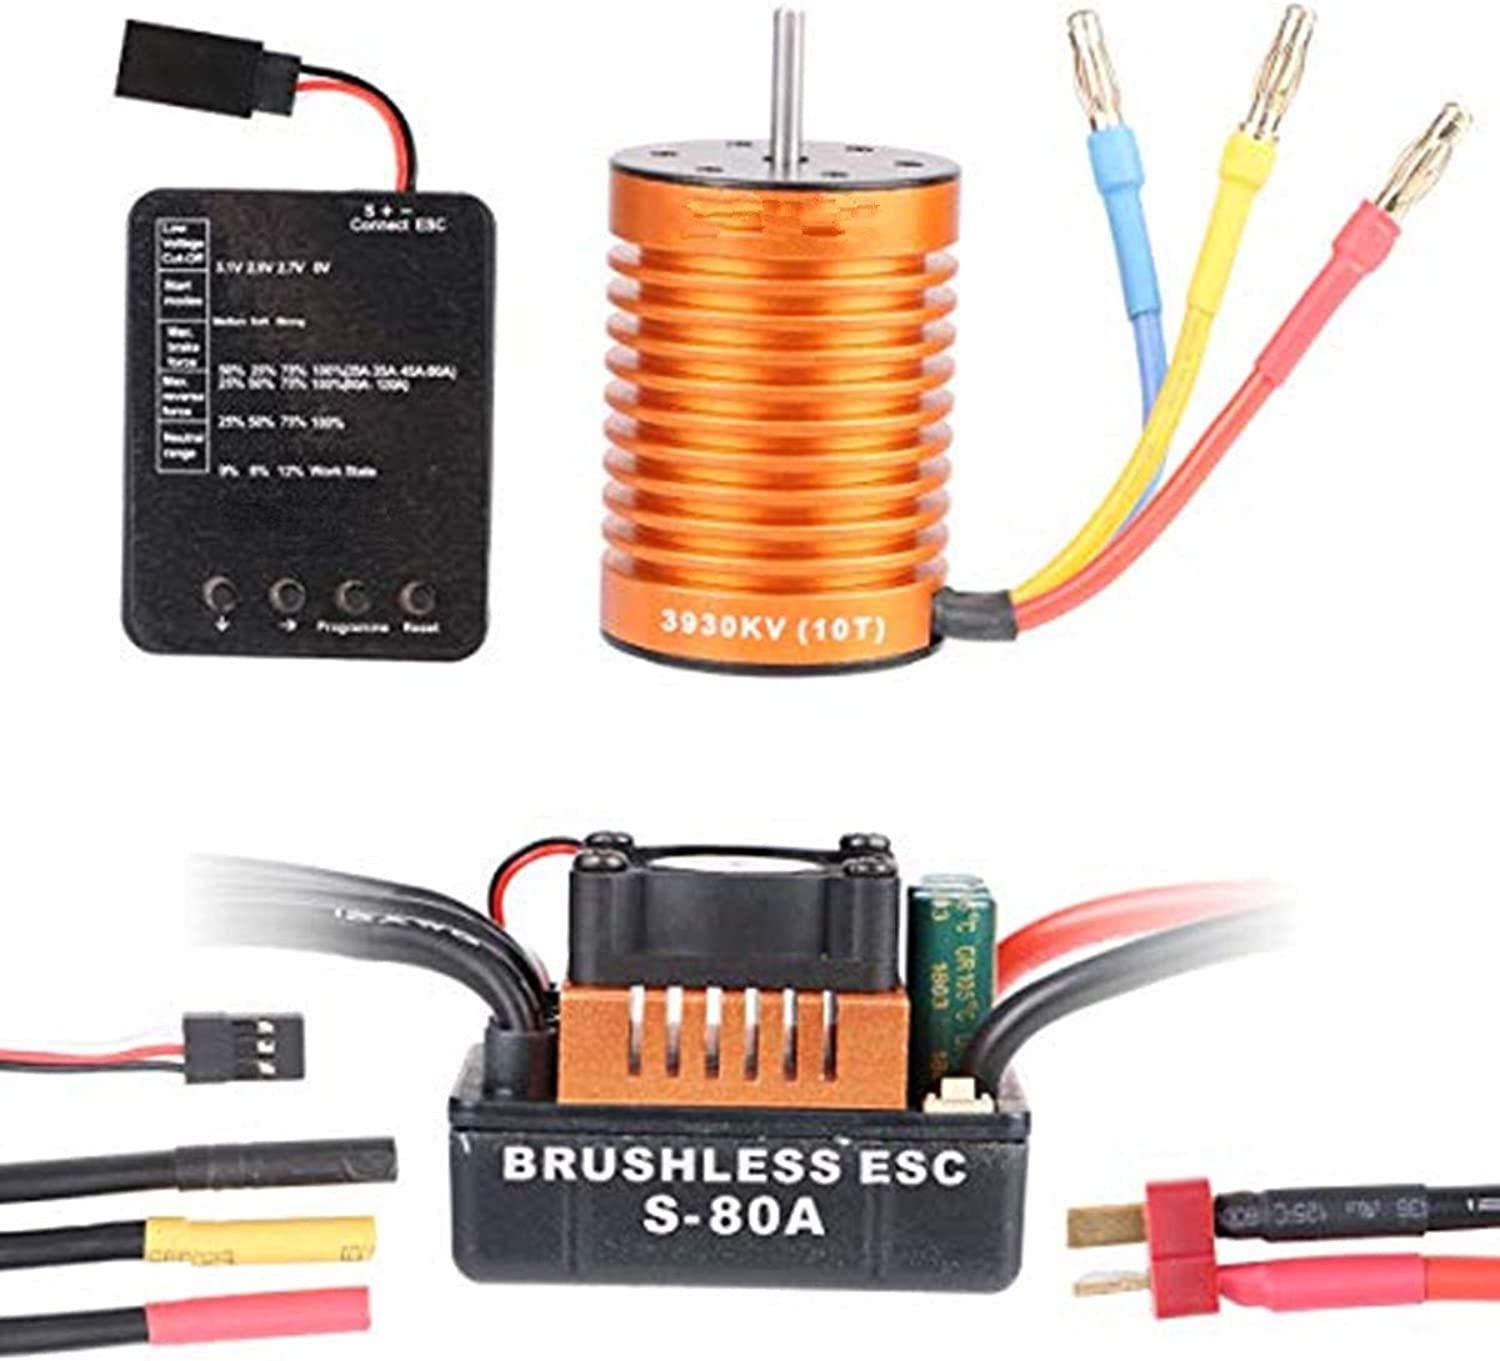 wholesape barato Crazepony-UK 10T 10T 10T 3930KV 4 Poles Sensorless Brushless Motor with 80A ESC and Programming Coched Combo Set for 1 10 RC Coche Truck  genuina alta calidad